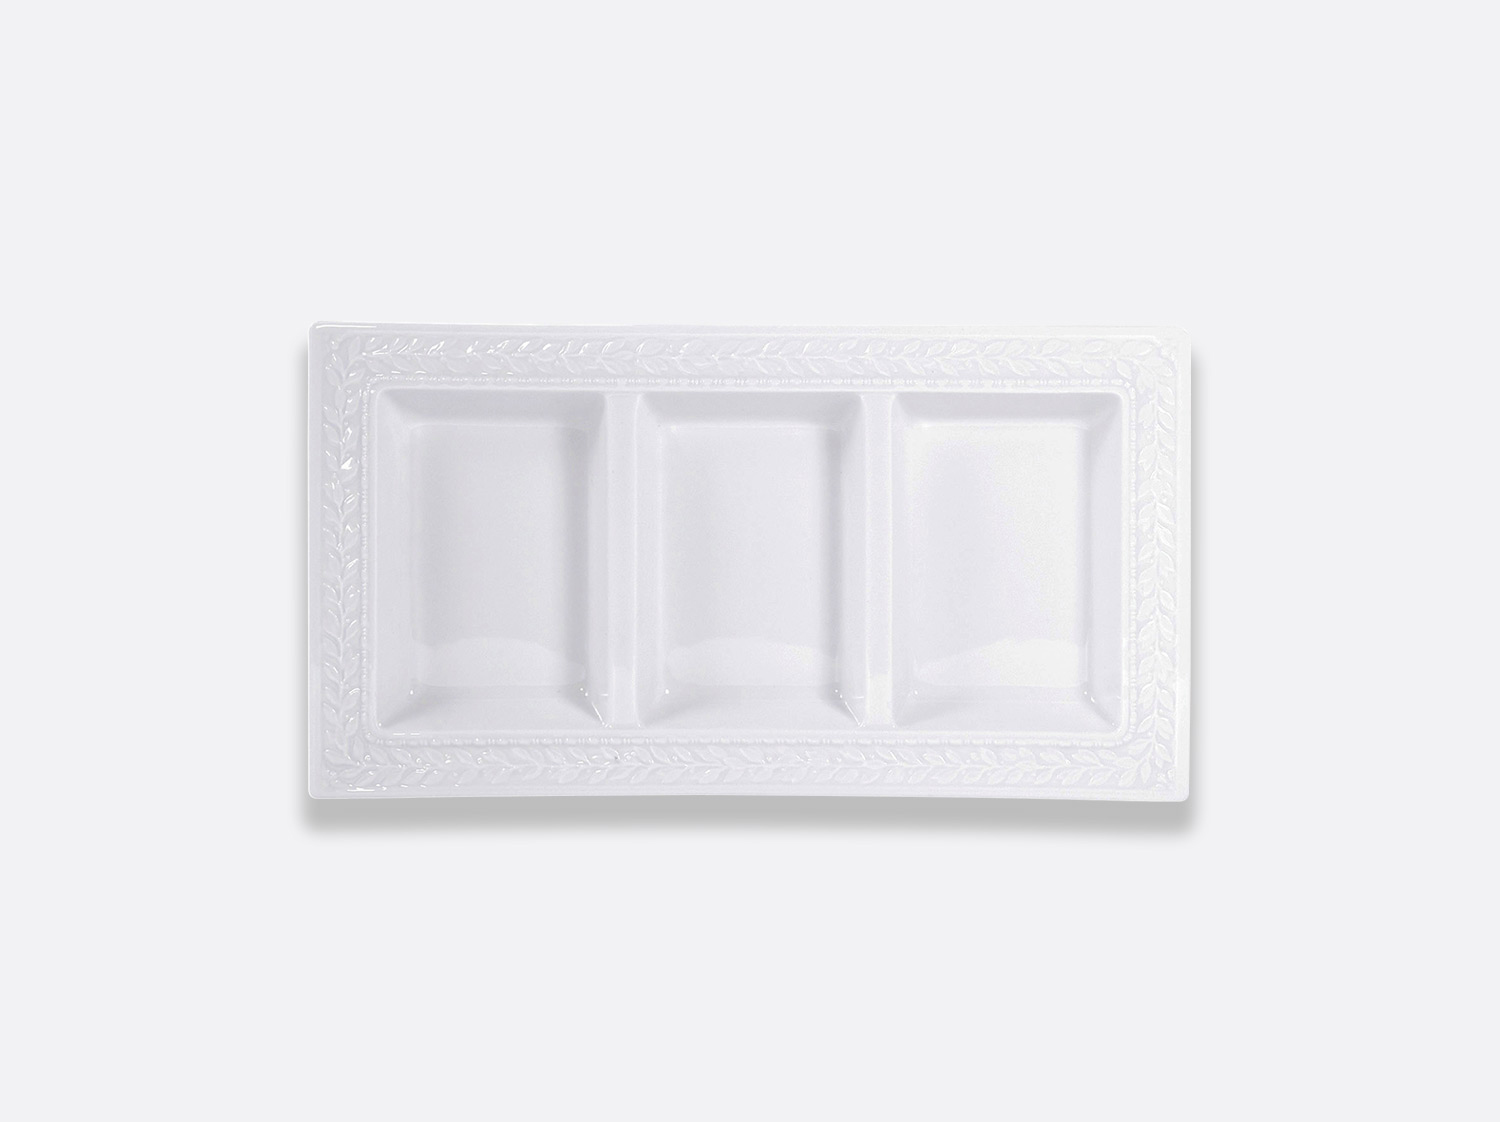 "China Rectangular 3-compartment tray 7"" x 13"" of the collection Louvre 